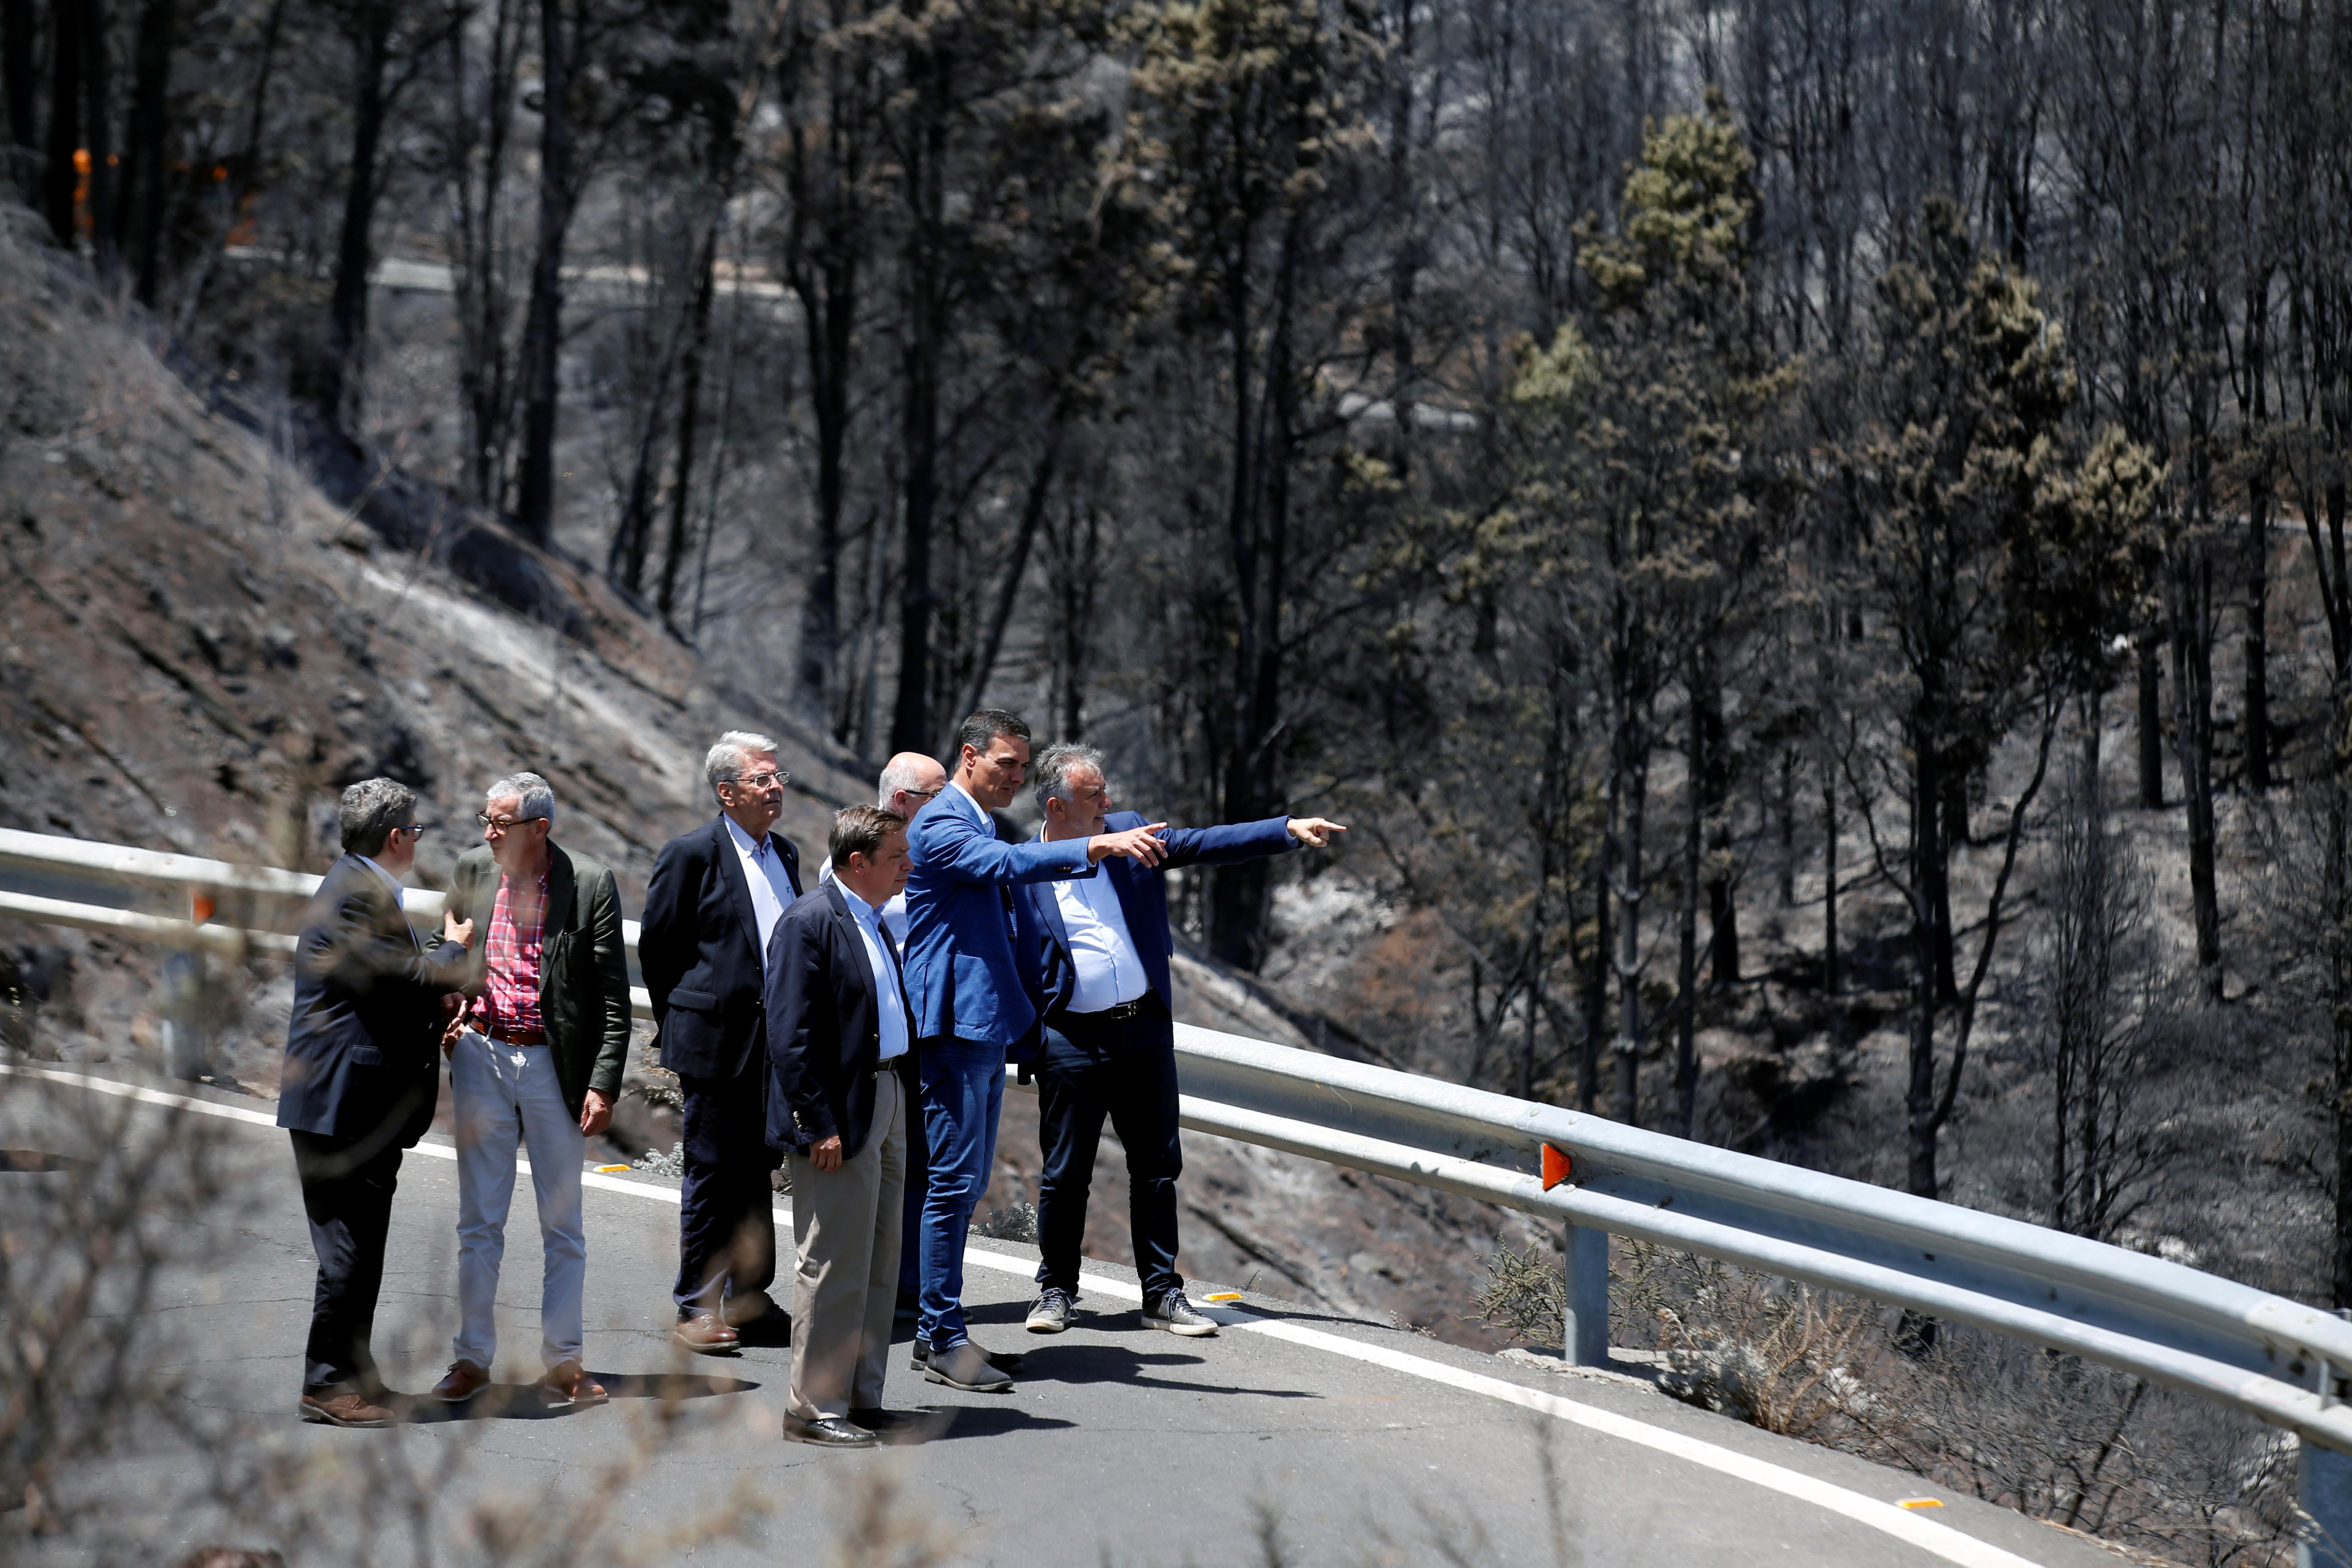 Canary Islands wildfire stable but continues to burn, acting PM says